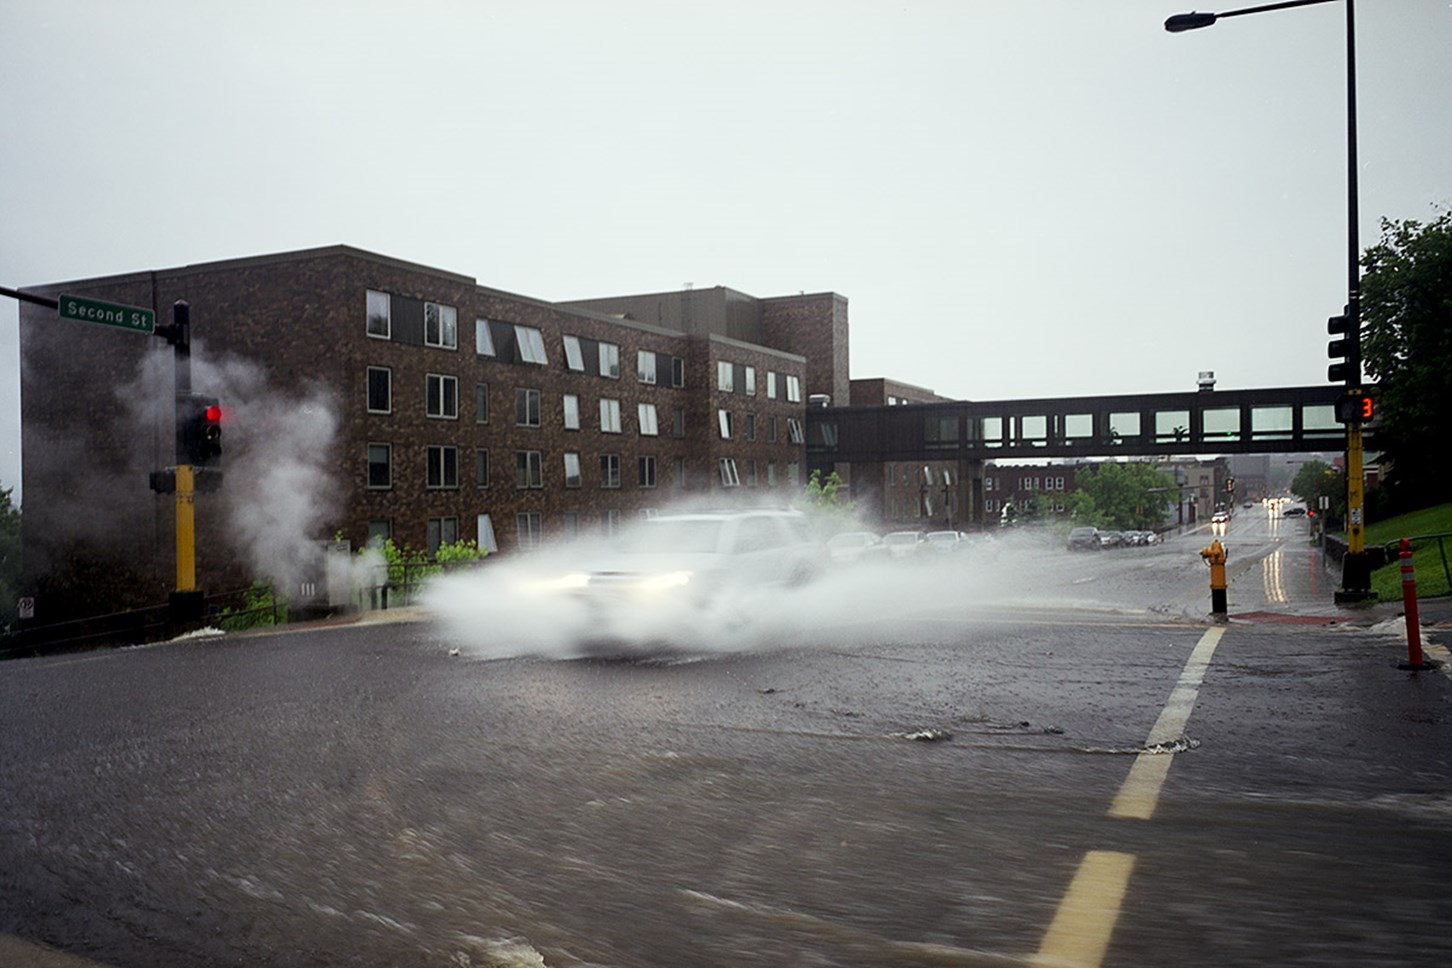 SUV Drives Through Rainwater, Duluth, Minnesota, June 2012